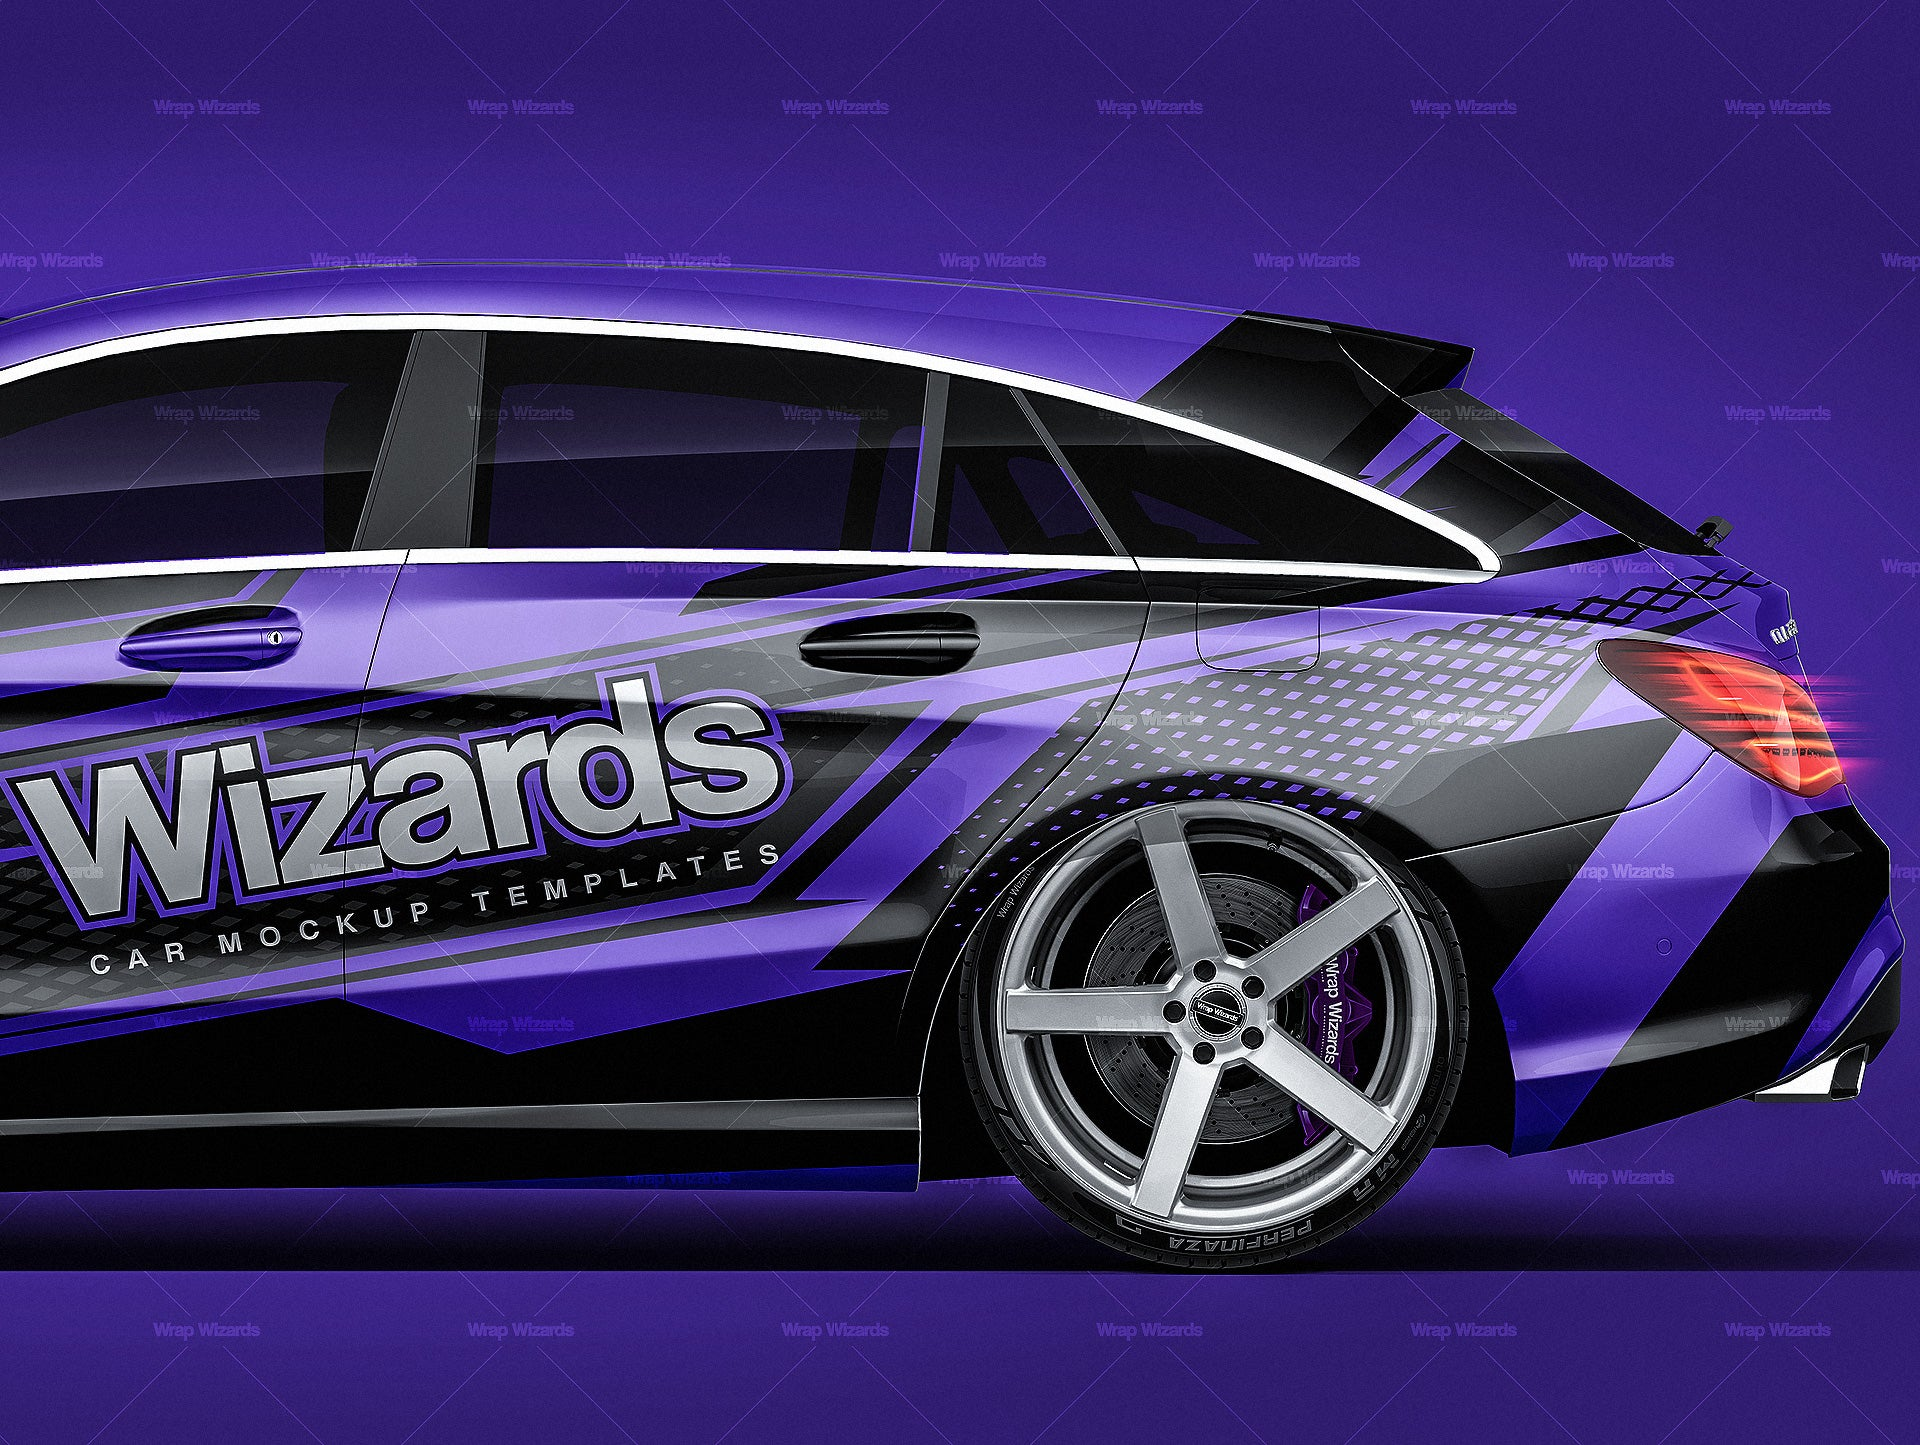 Mercedes Benz CLA Shooting Brake 2016 all sides Car Mockup Template.psd